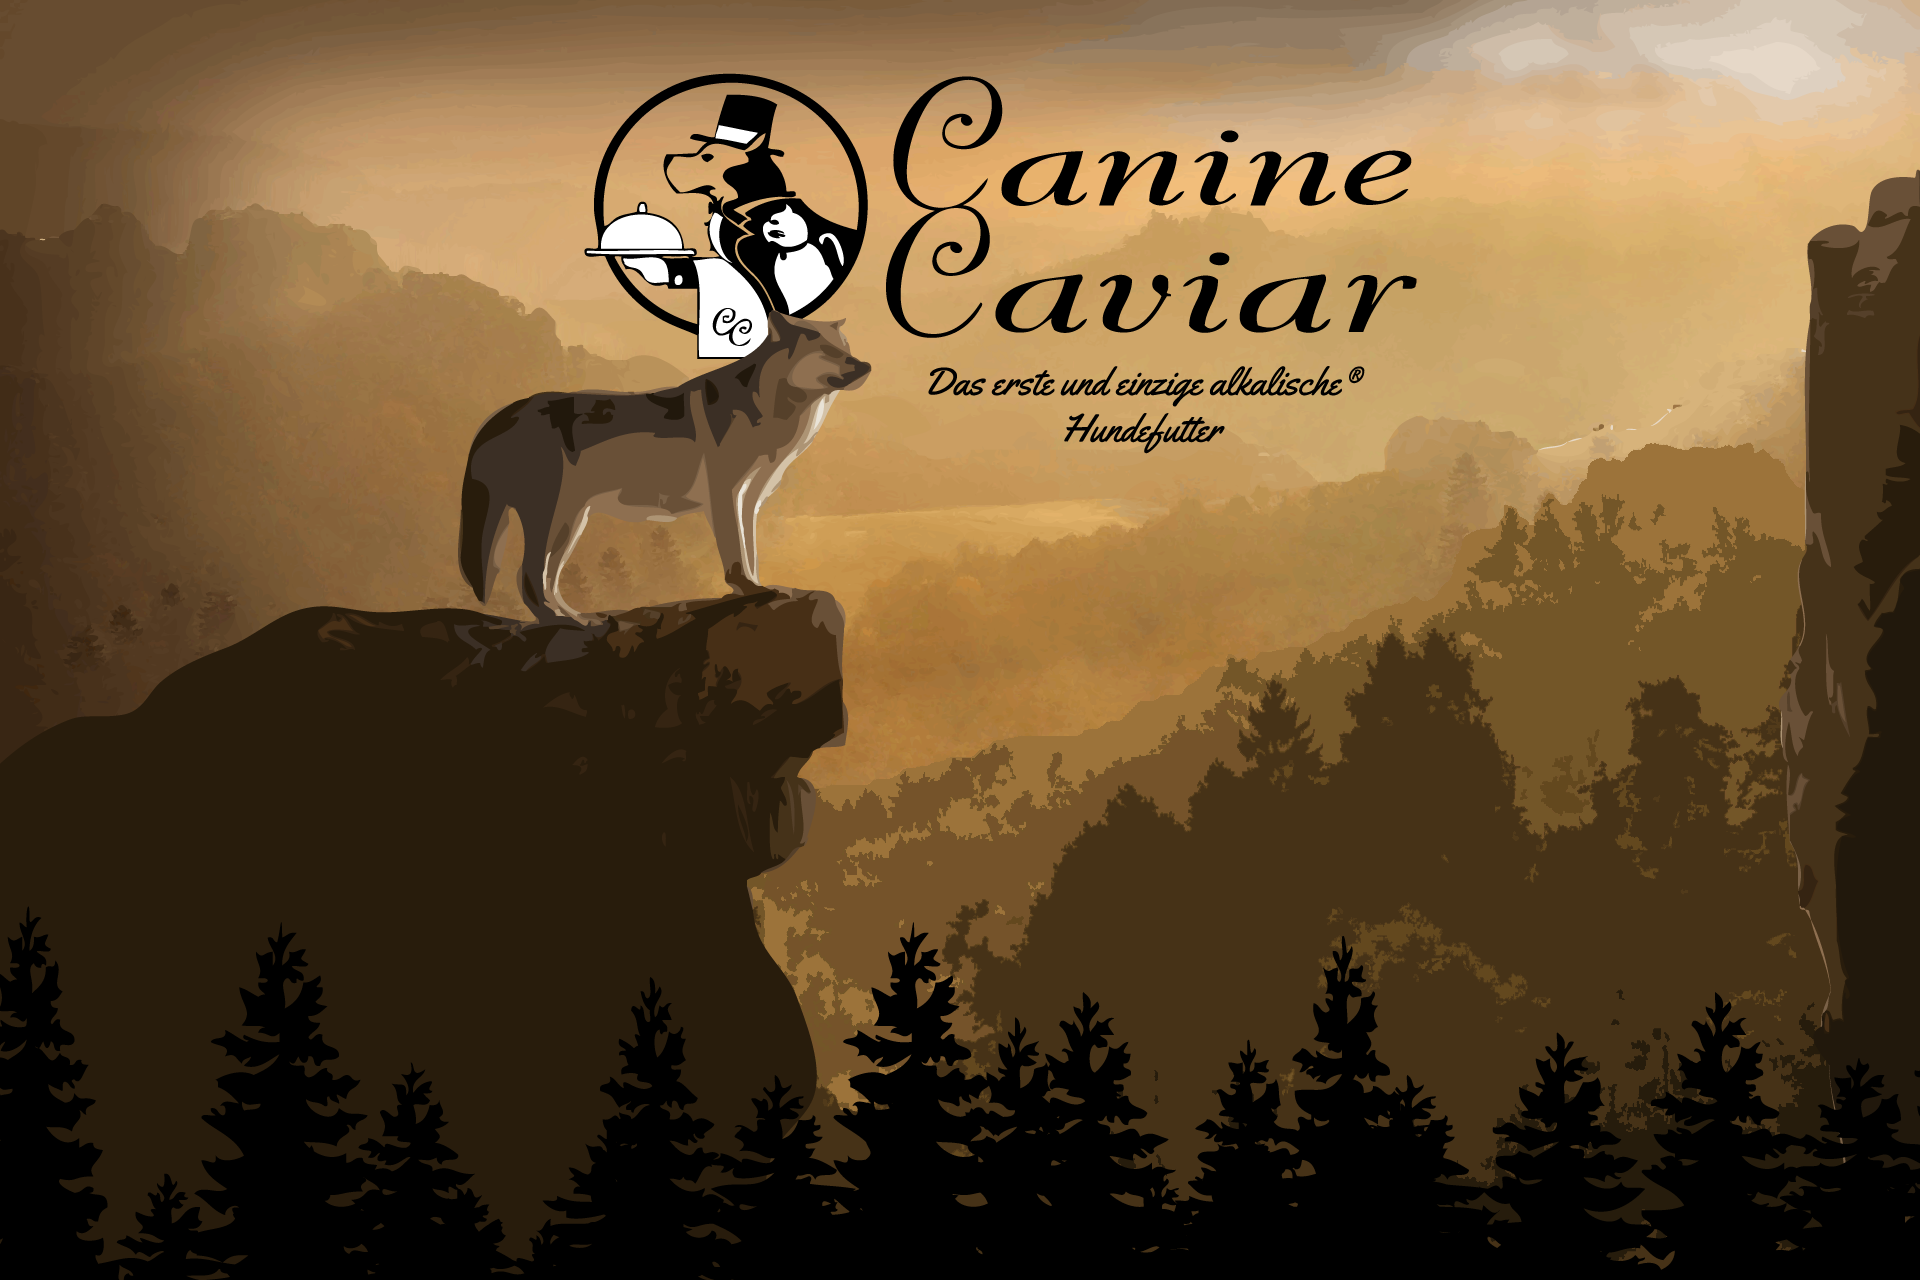 Canine Caviar Germany